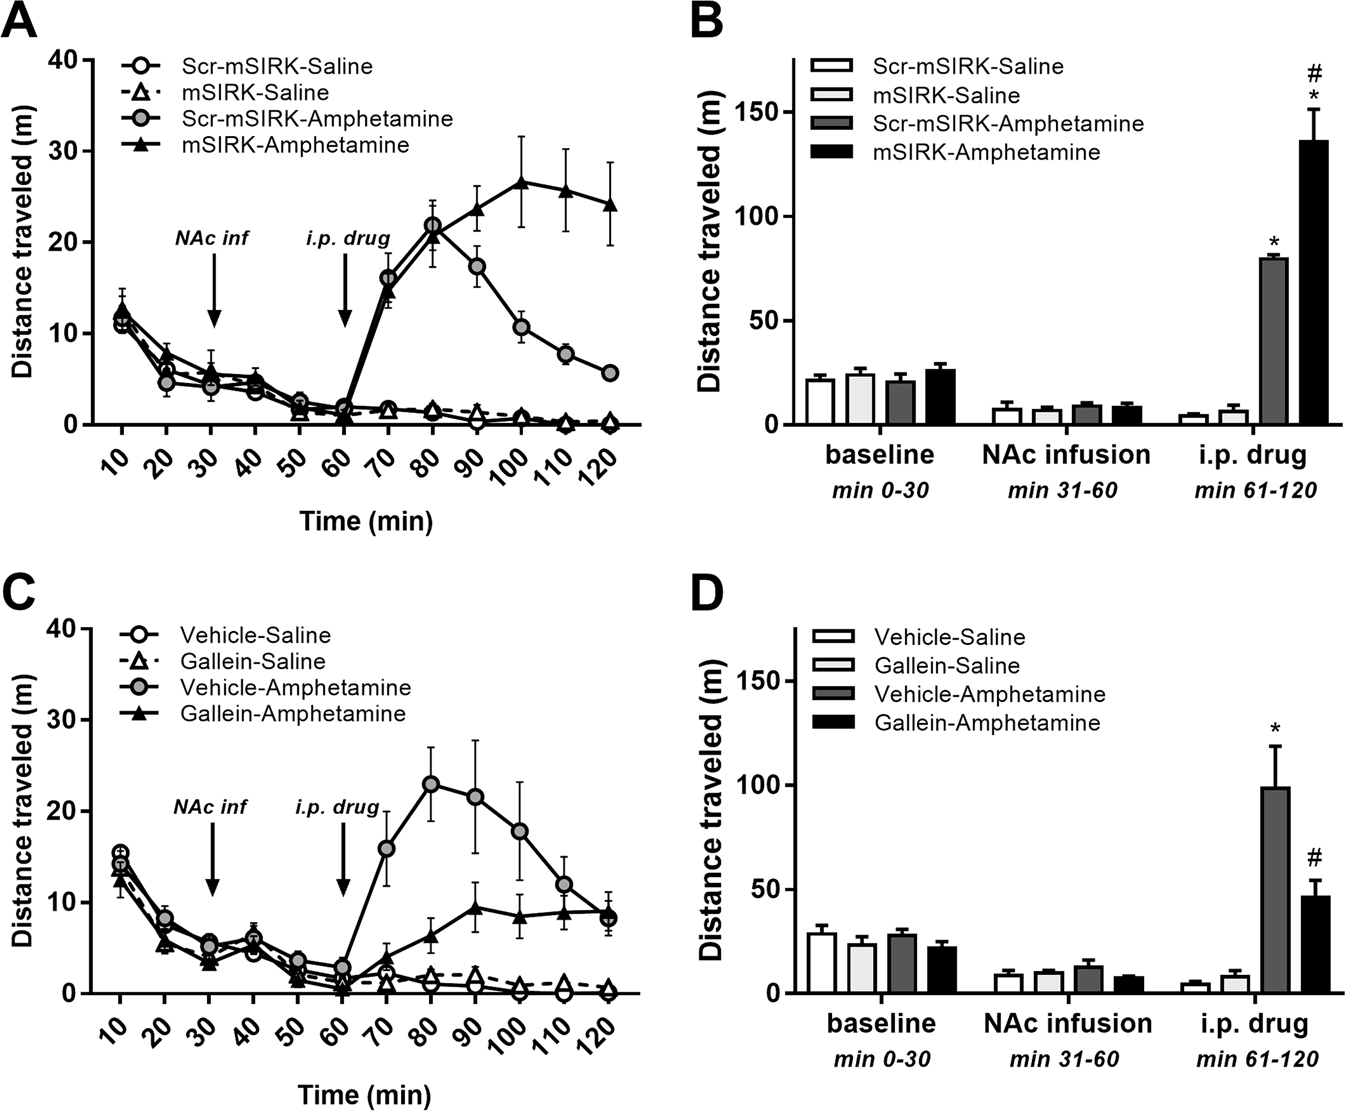 44b9e4dd3 G protein βγ subunits play a critical role in the actions of amphetamine